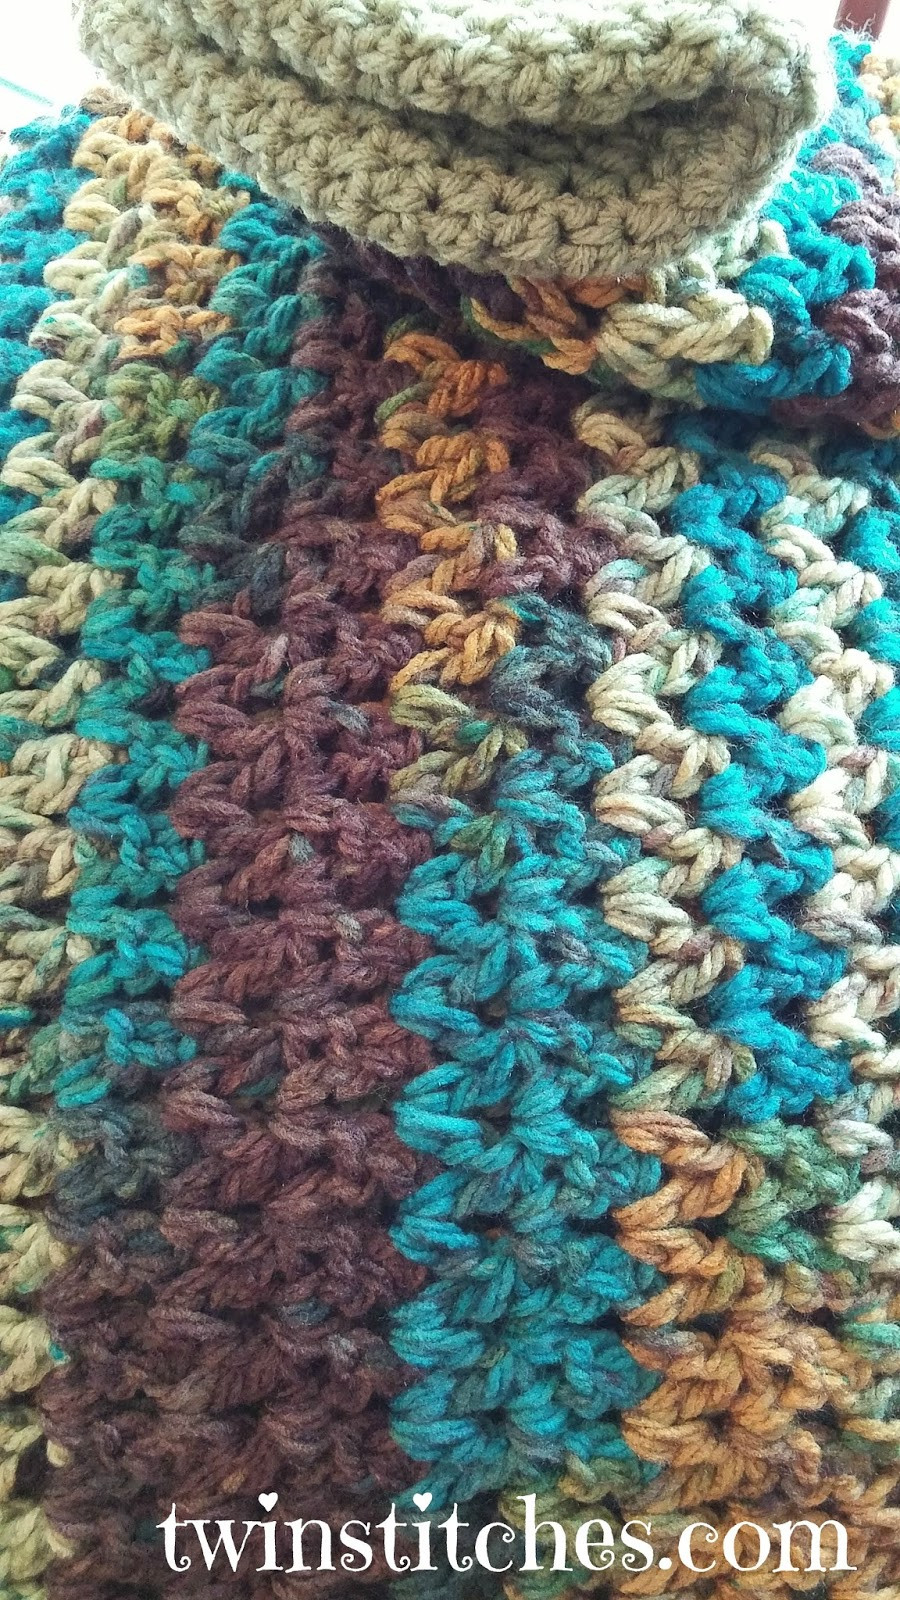 Awesome Tw In Stitches Sedona Wobbly Stripes Blanket Free Variegated Yarn Baby Blanket Pattern Of Delightful 44 Ideas Variegated Yarn Baby Blanket Pattern